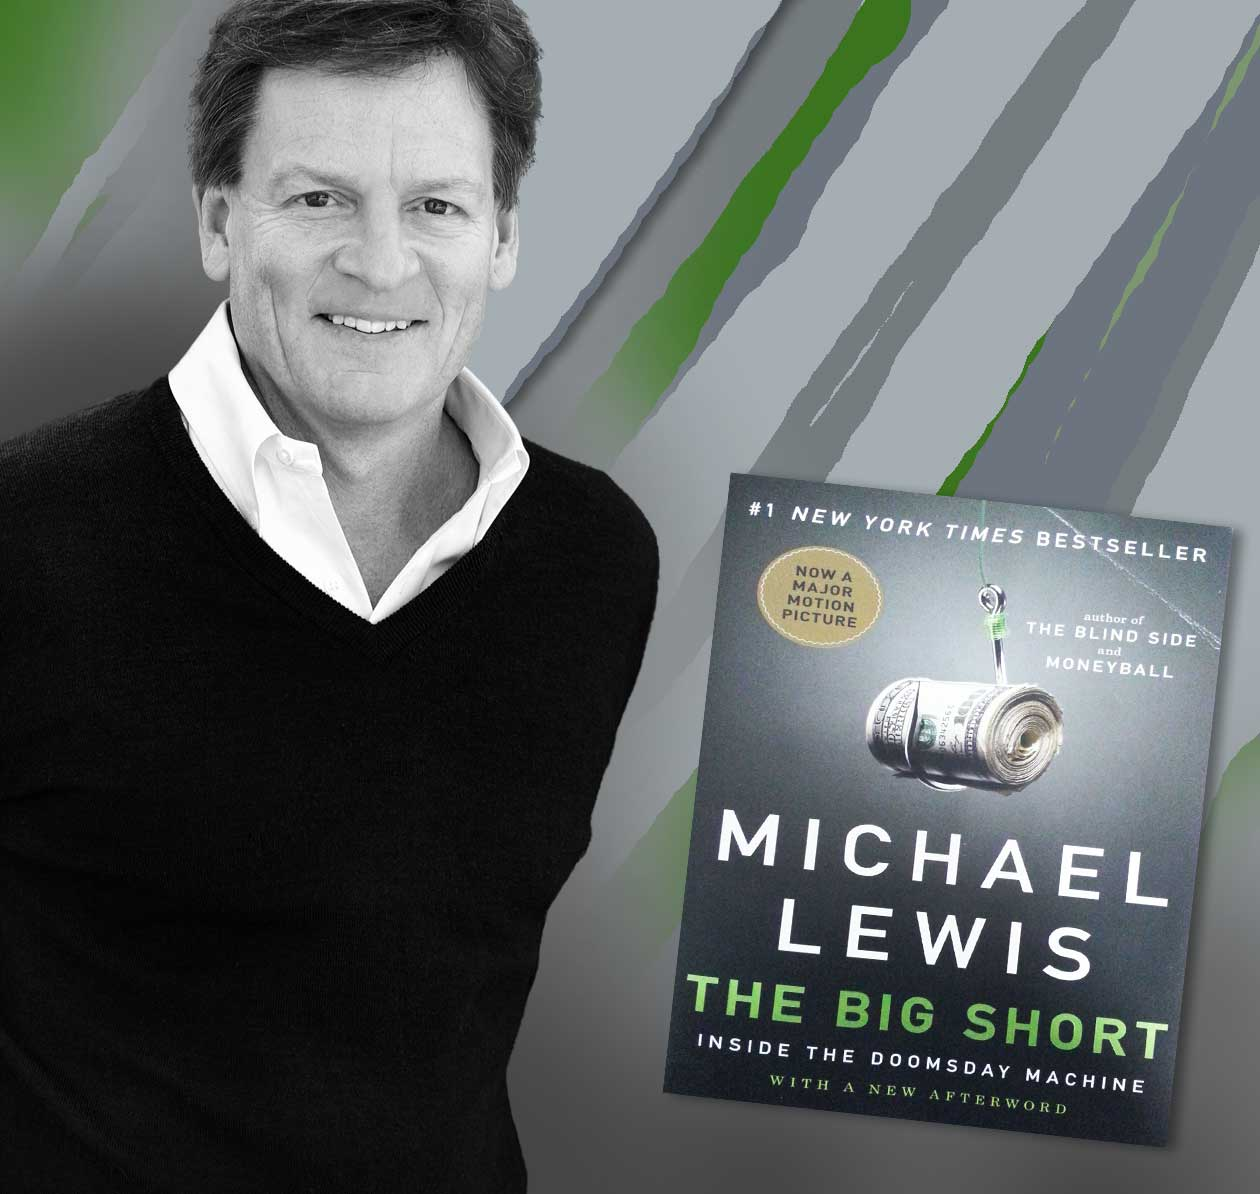 Michael Lewis author of The Big Short